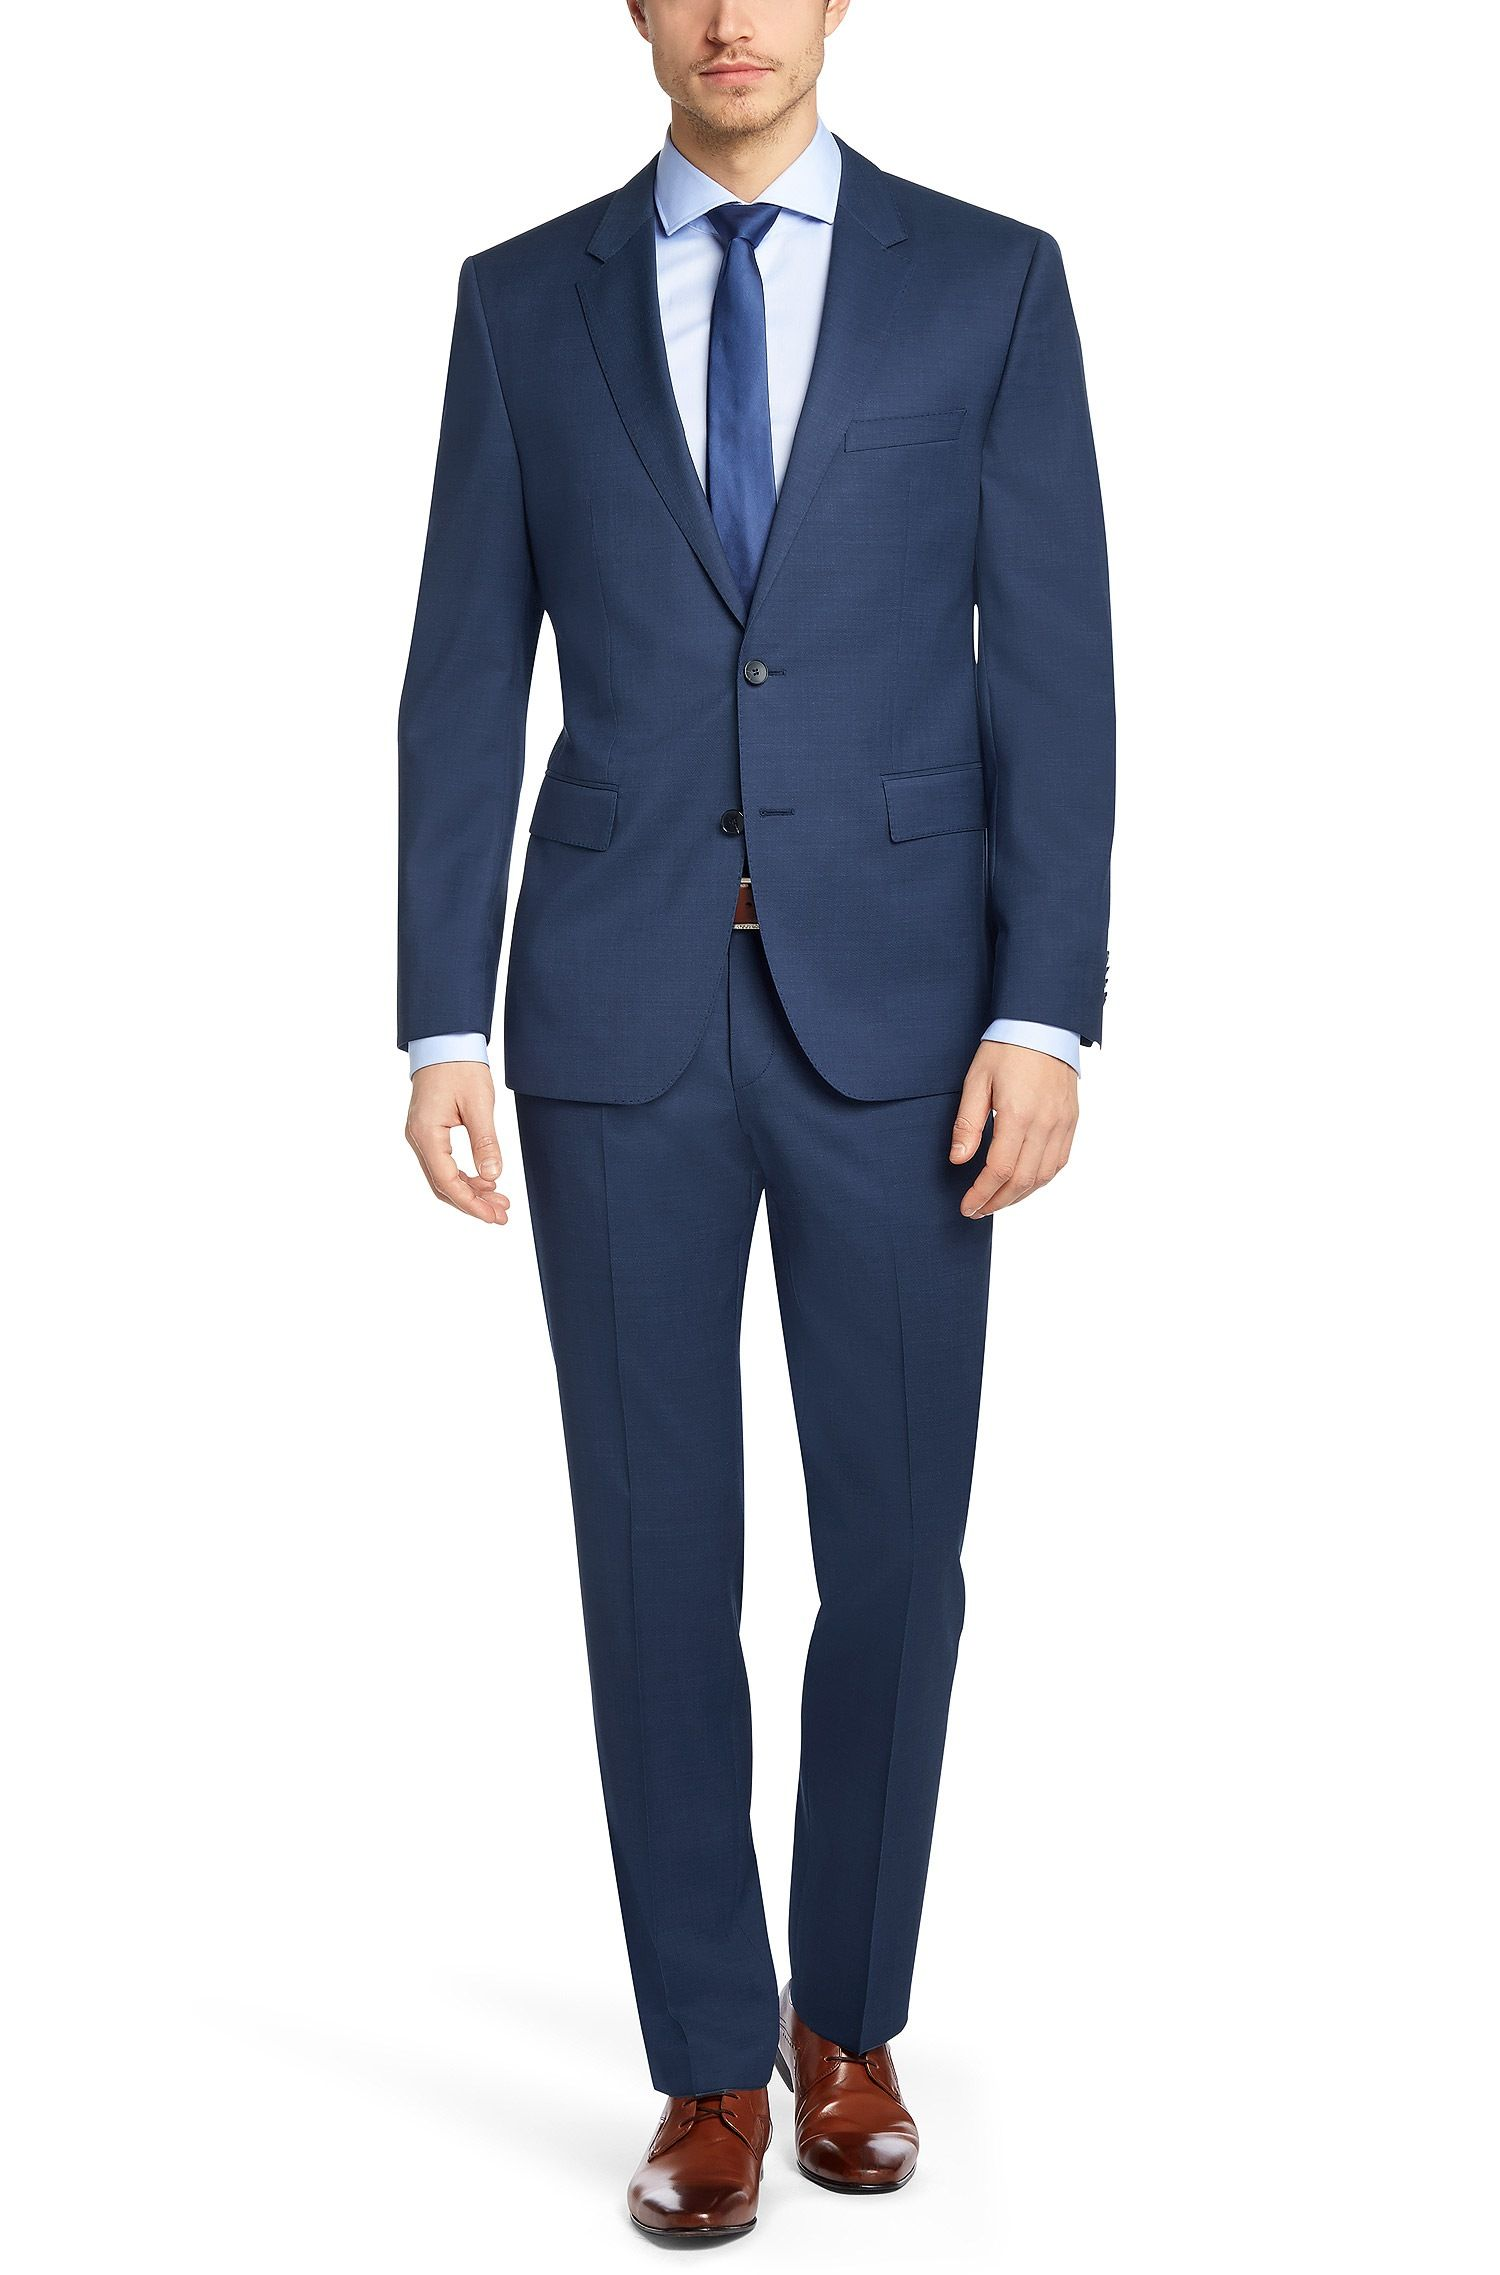 a1ceca394 BOSS Regular fit suit 'The James5/Sharp7' in new wool Blue free shipping